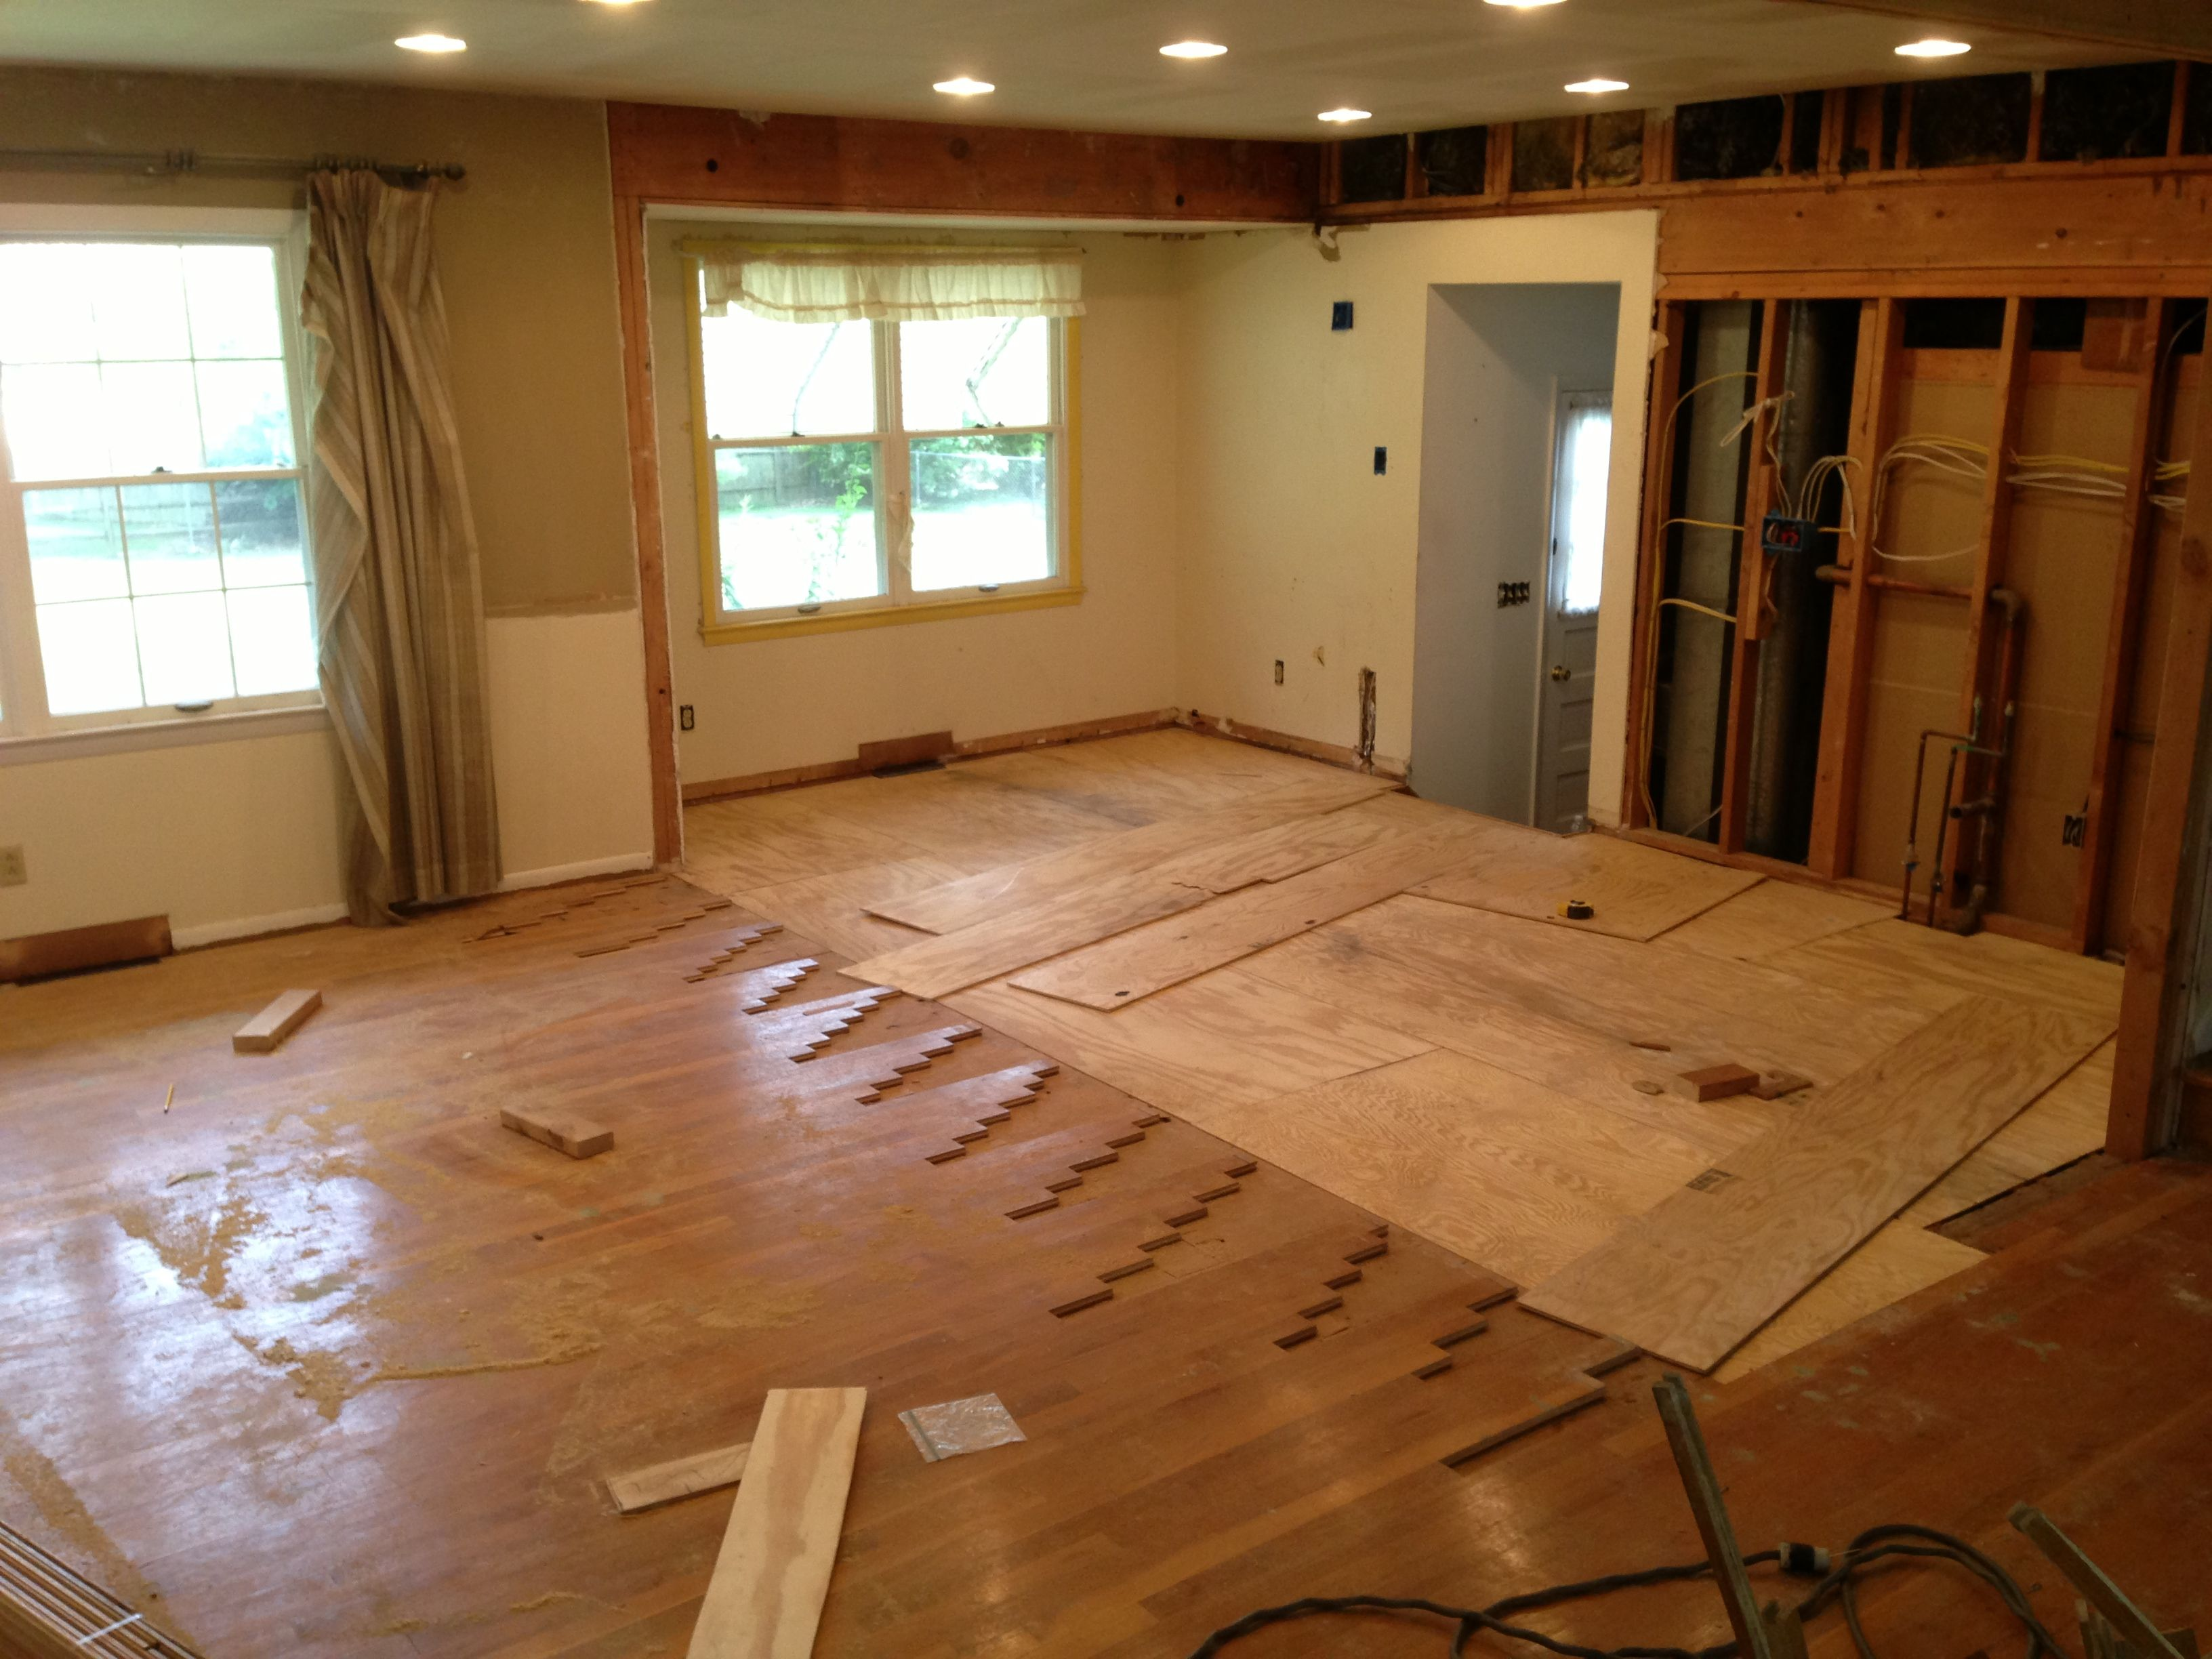 Kitchen Subfloor Reinstalled And Hardwood Floors Being Cut Back To Help  Better Match Up To New